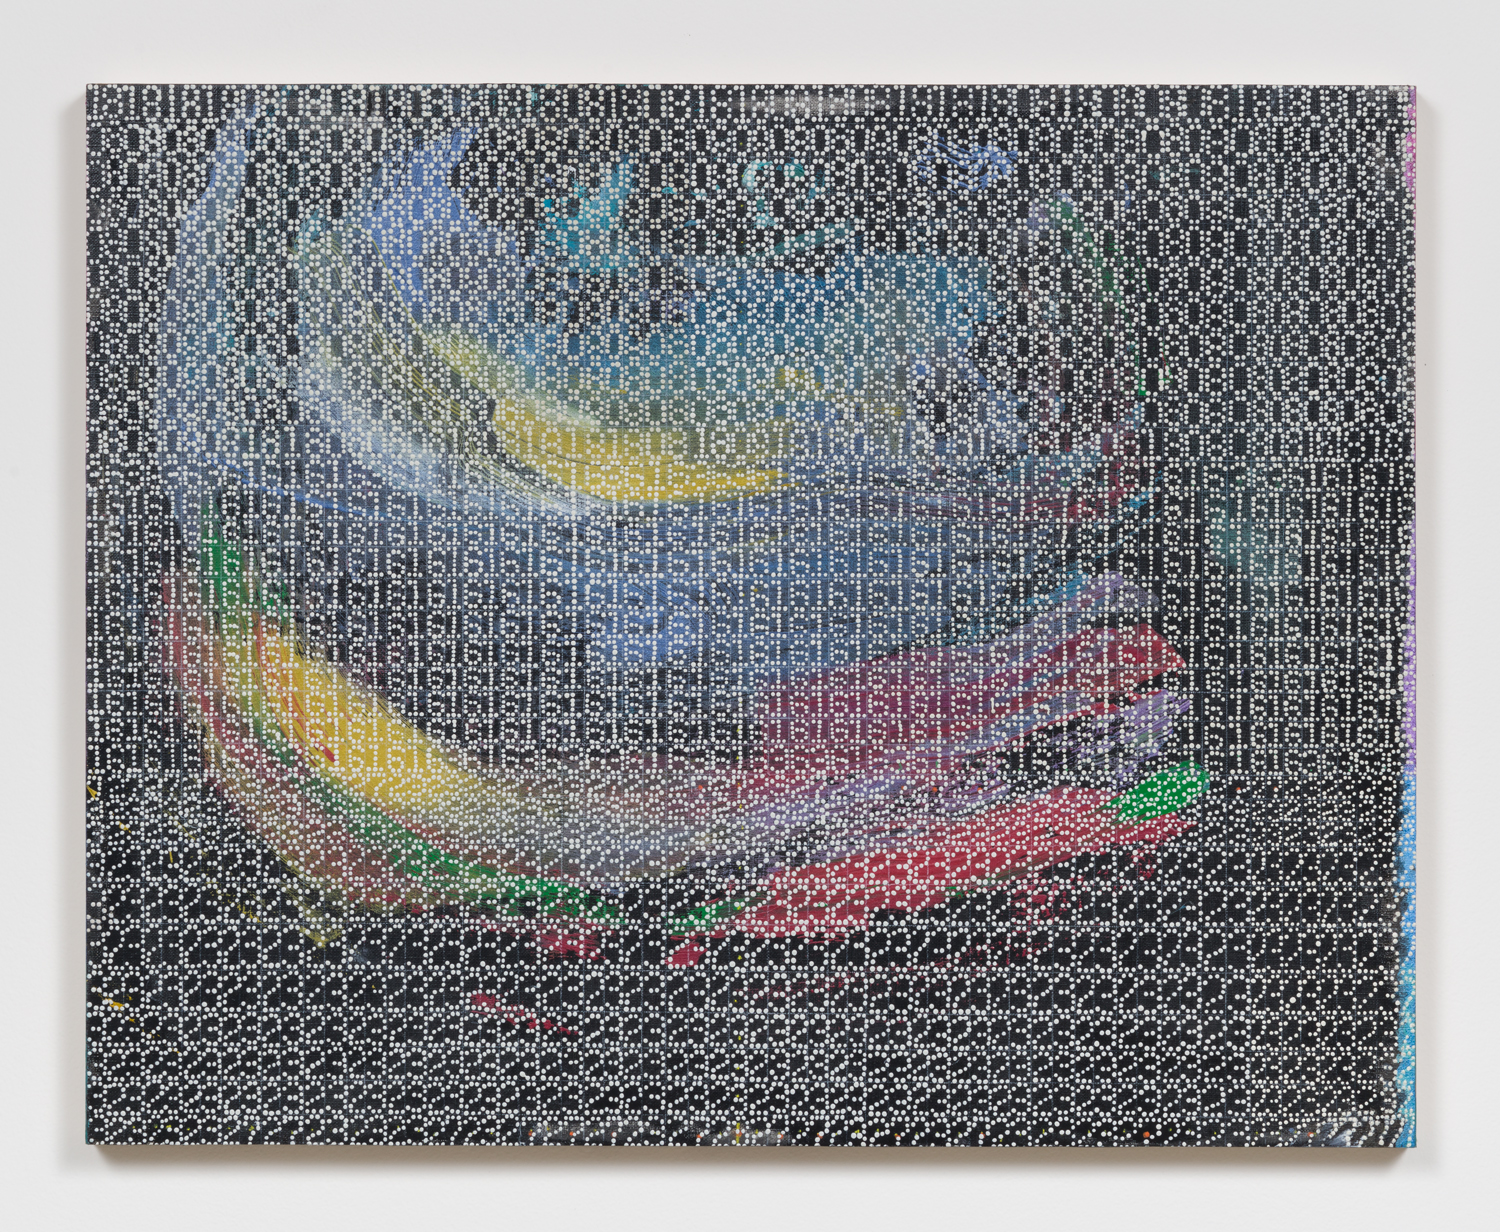 XYLOR JANE  Untitled (Three 727 digit Sophie Germain prime palindromes ), 2017  oil and colored pencil on paper mounted on board 16 x 20 inches